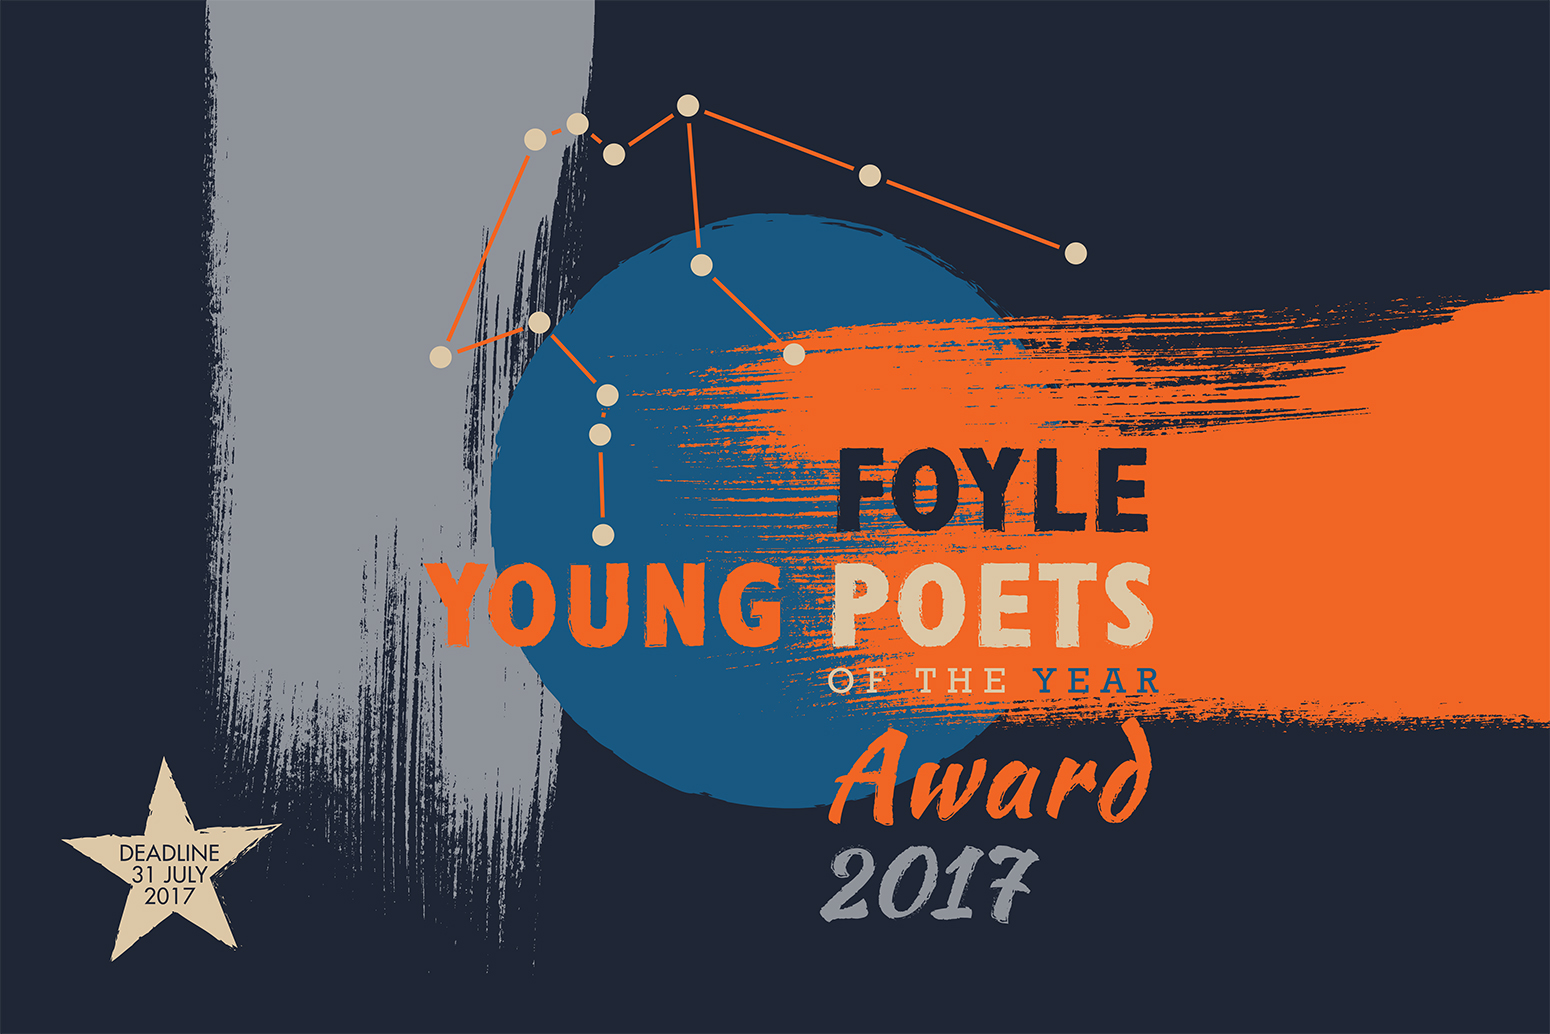 Foyle Young Poets of the Year Award 2017